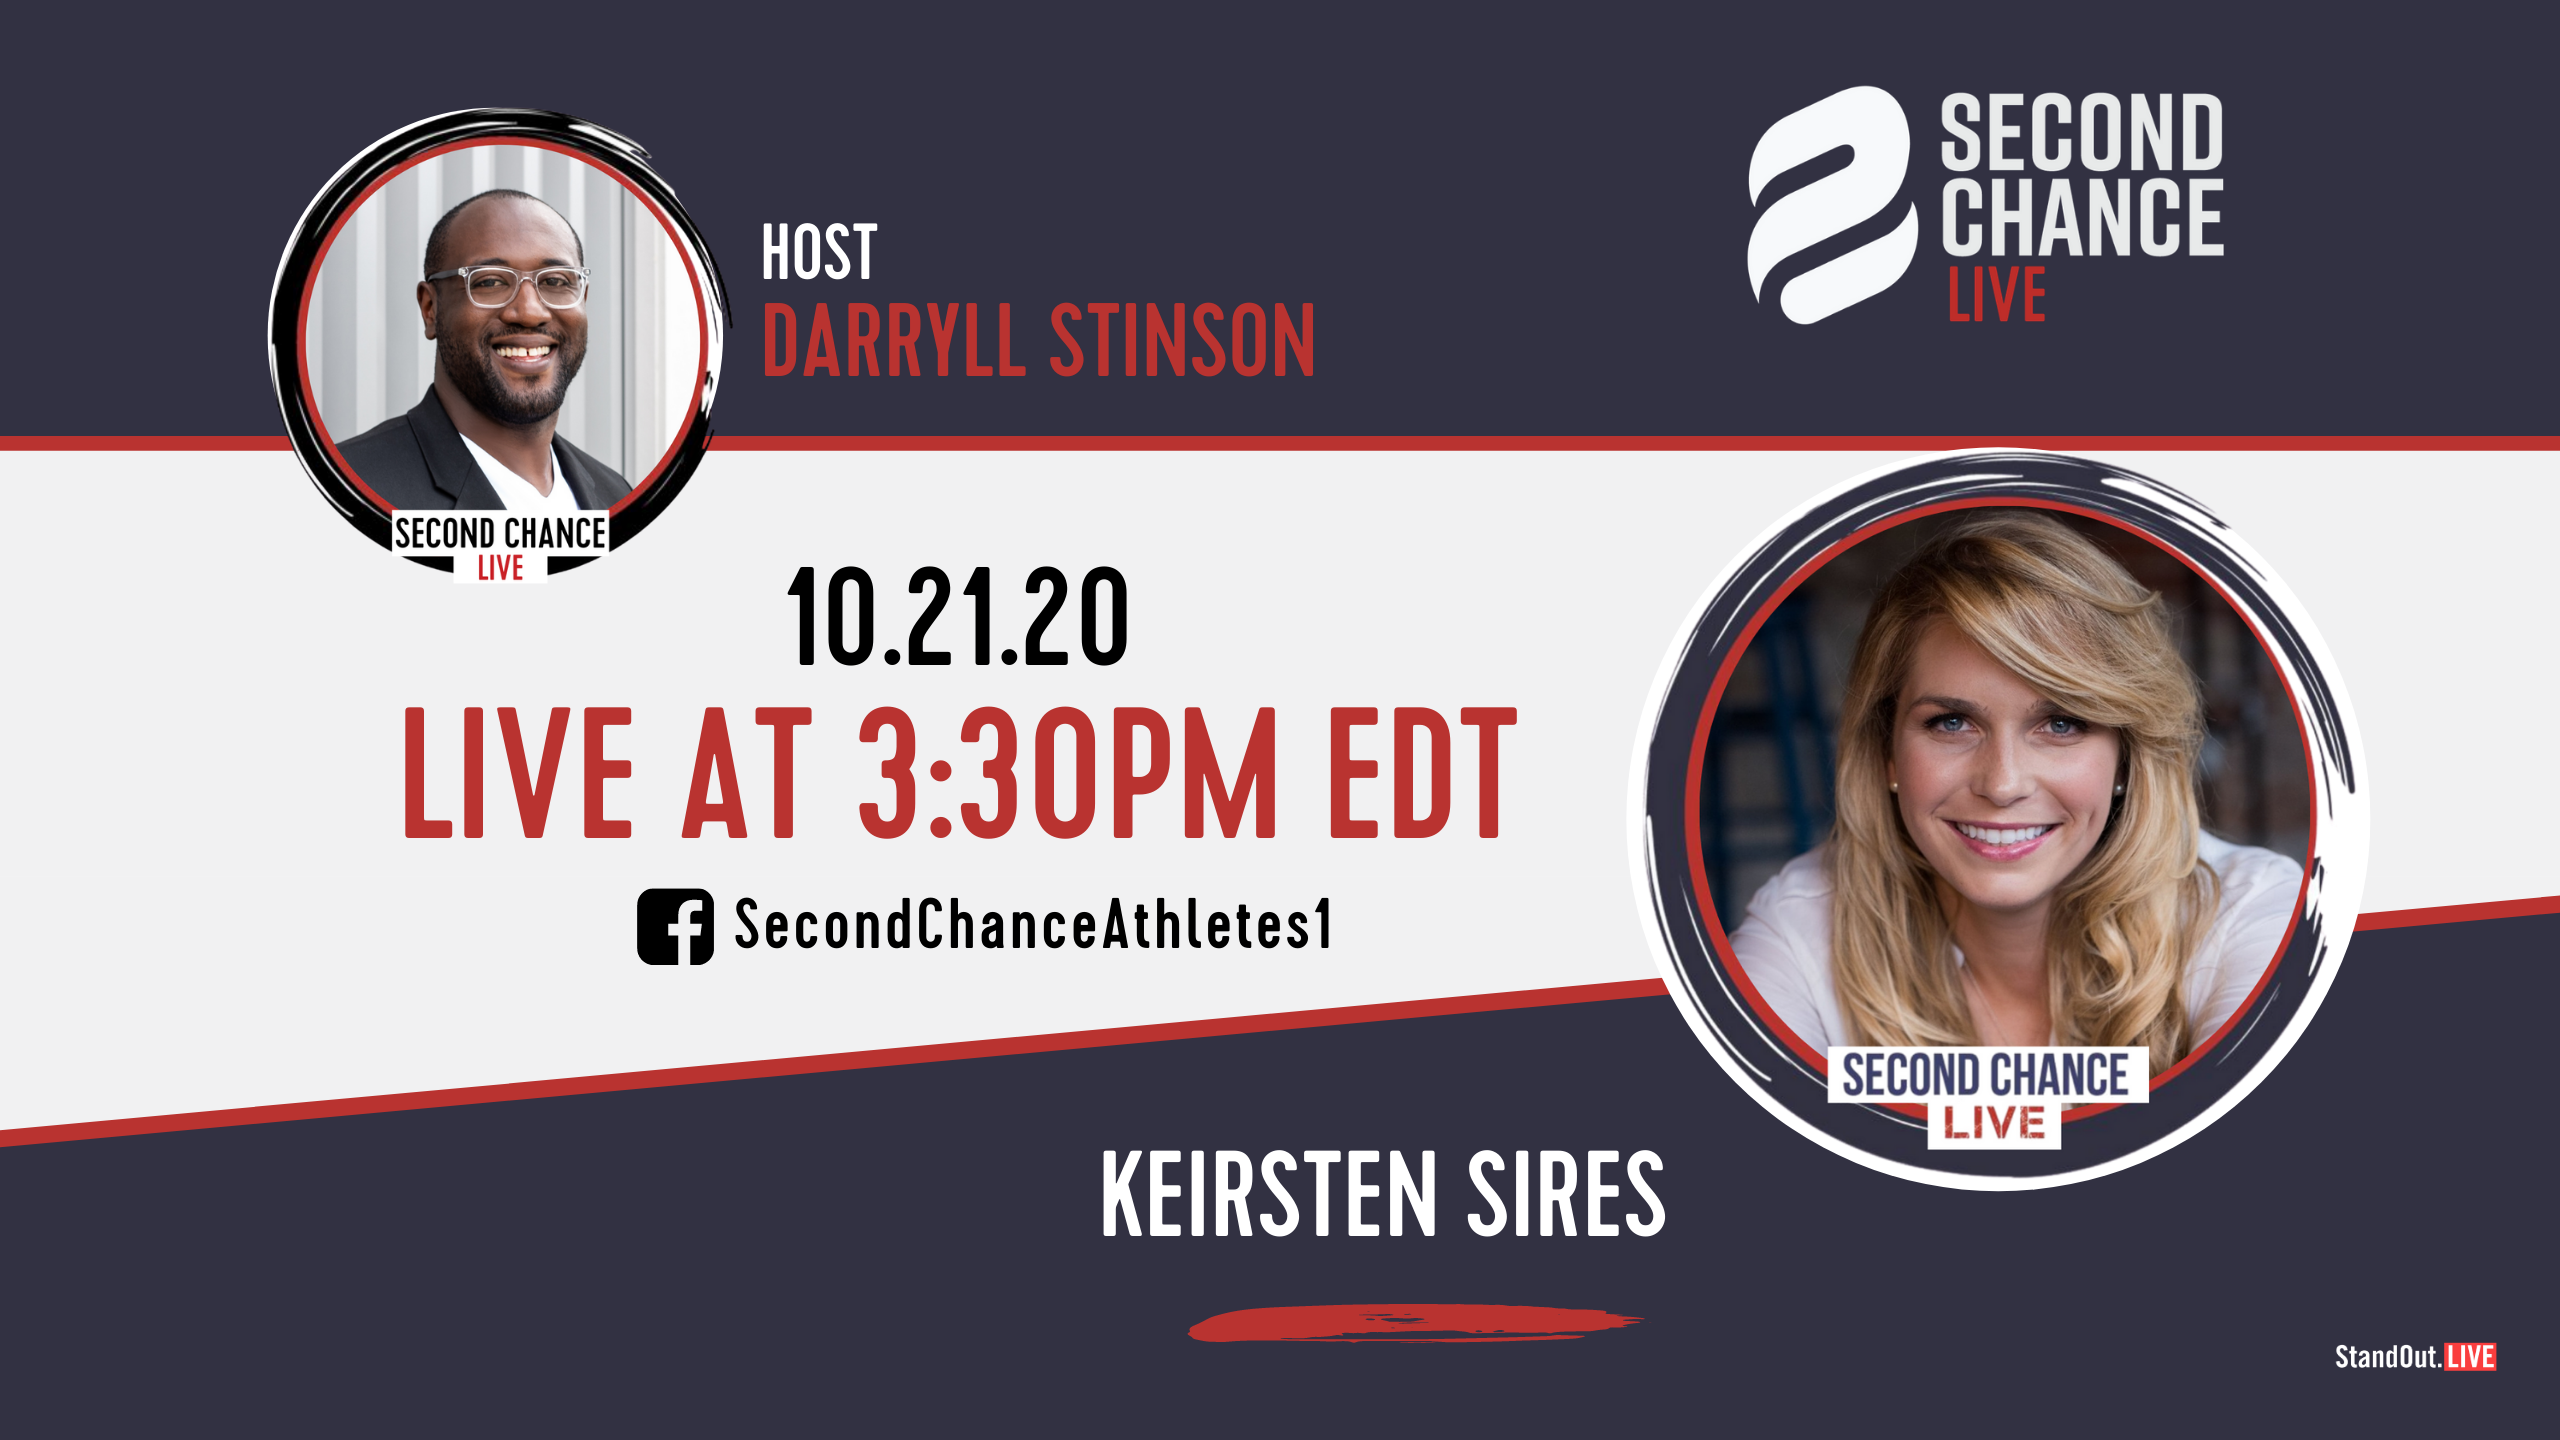 Second Chance LIVE -with Keirsten Sires